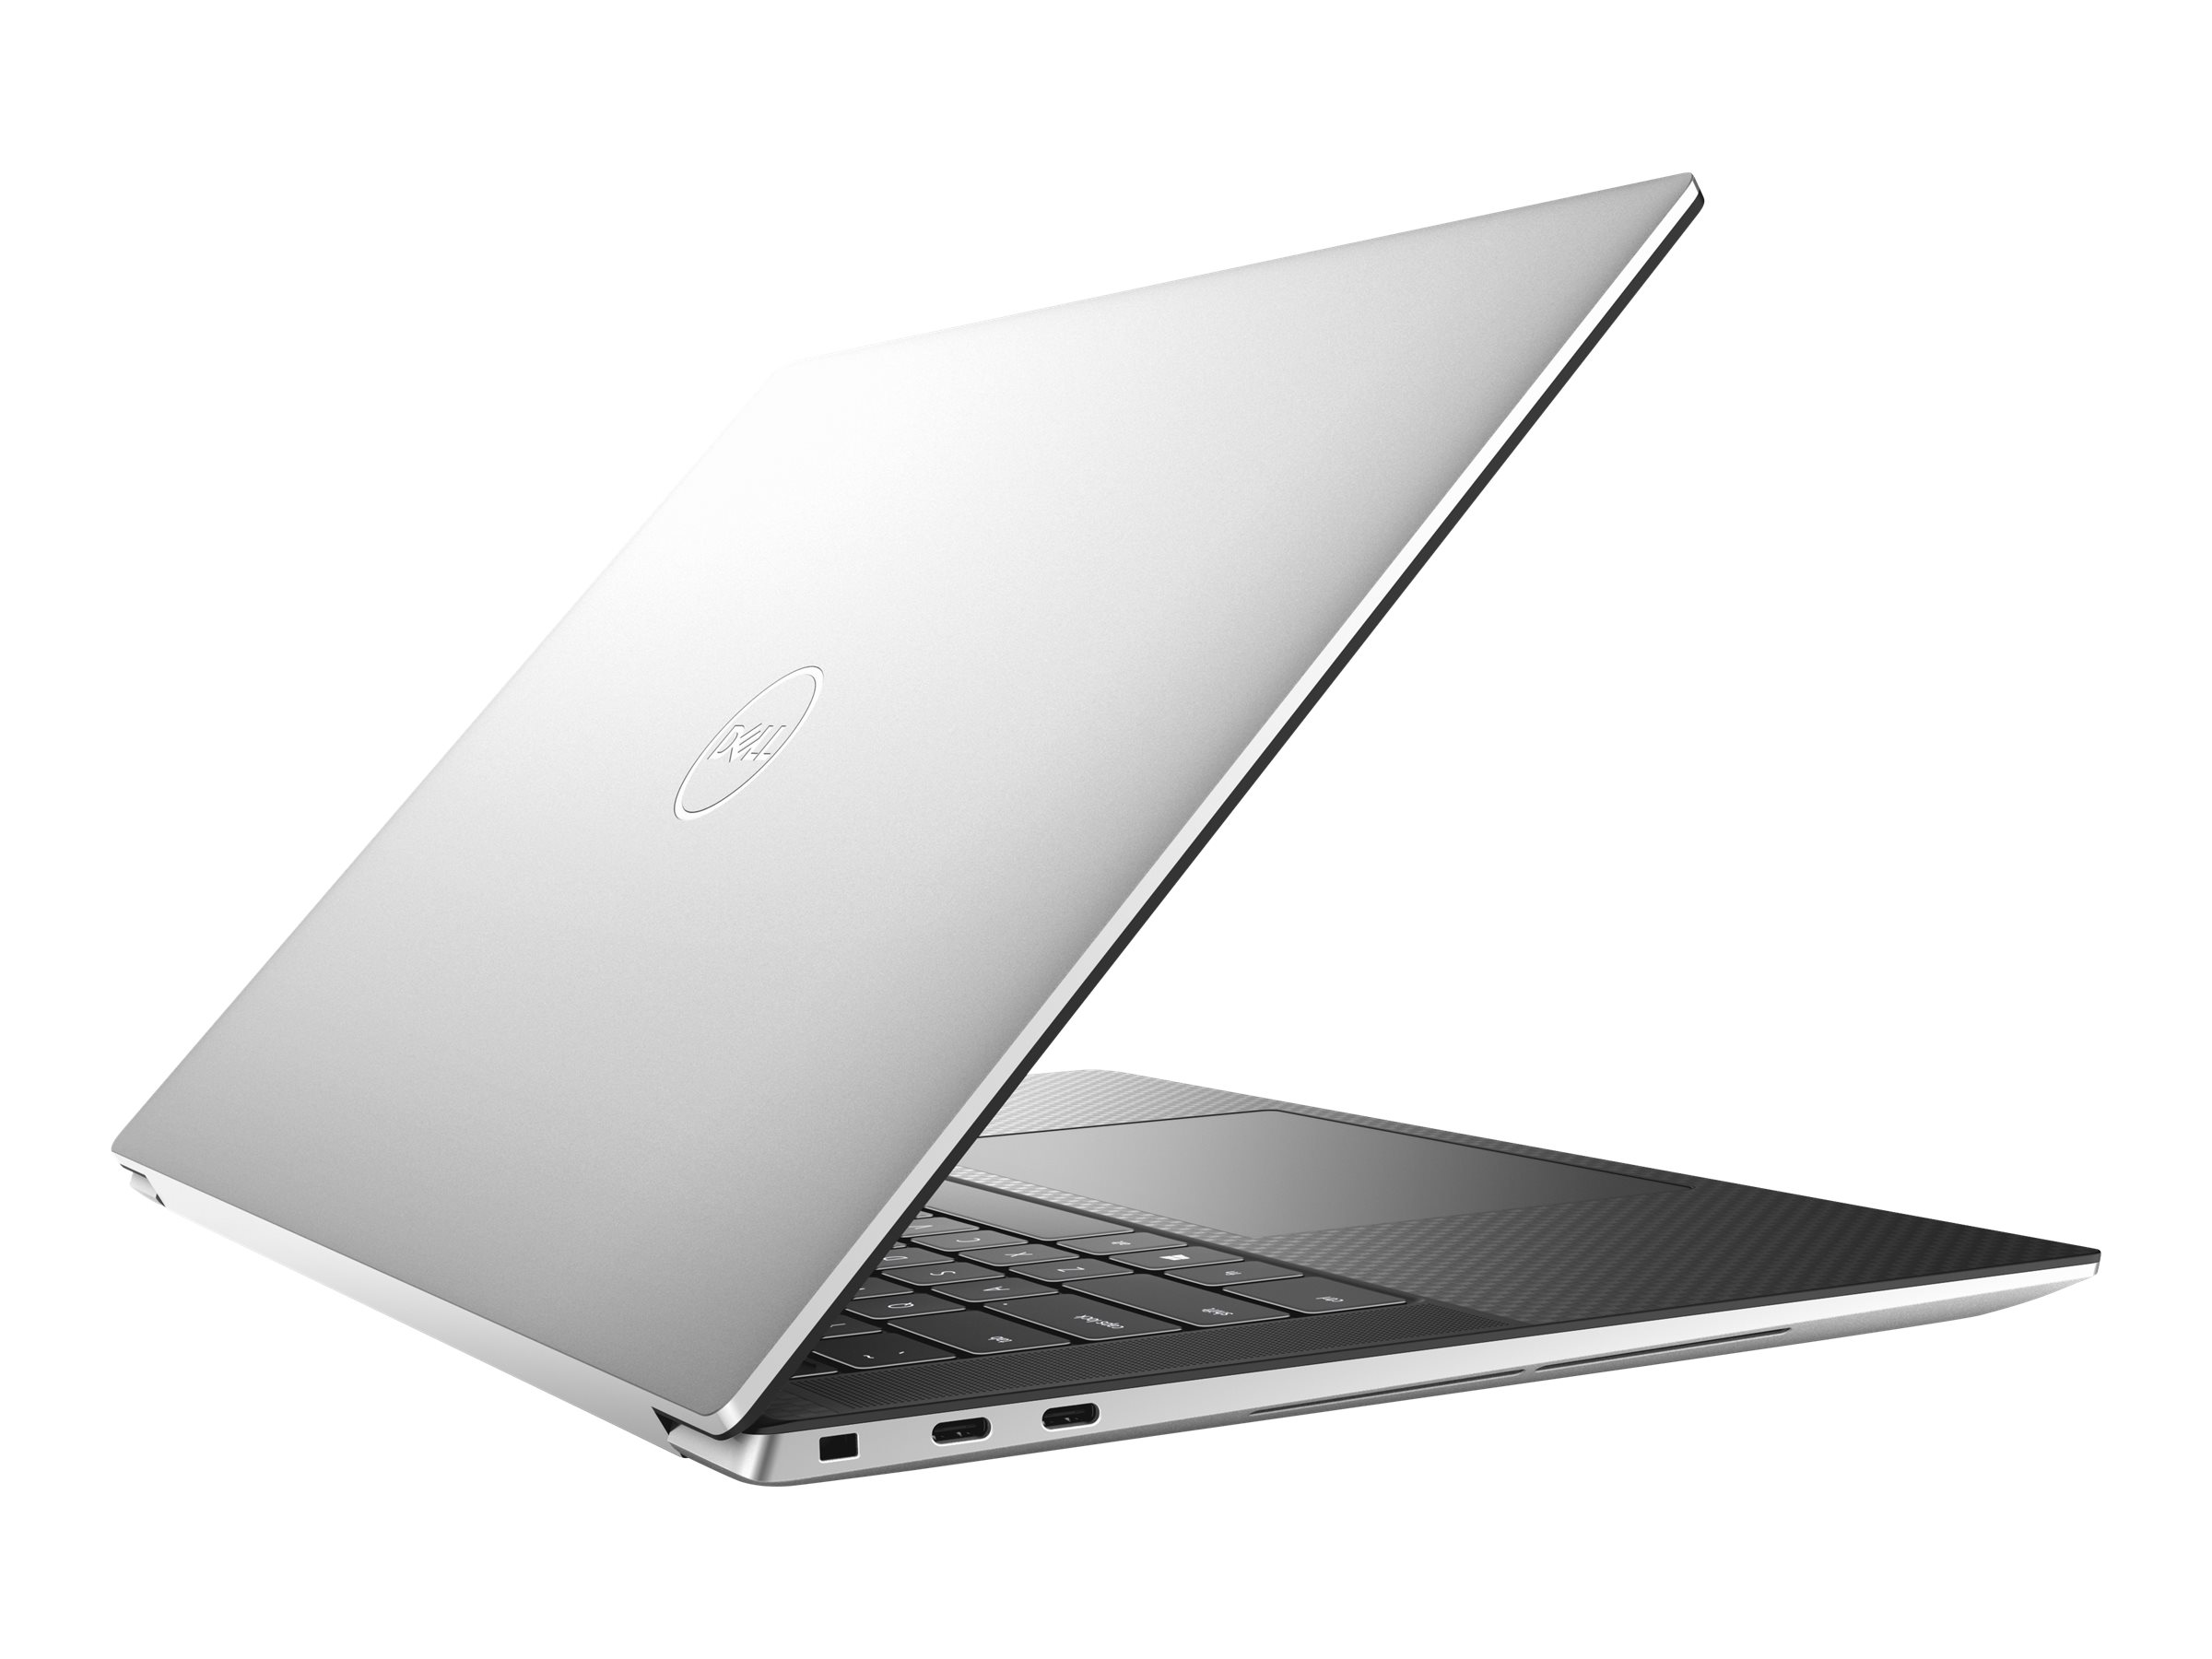 Dell XPS 15 9500 - 15.6